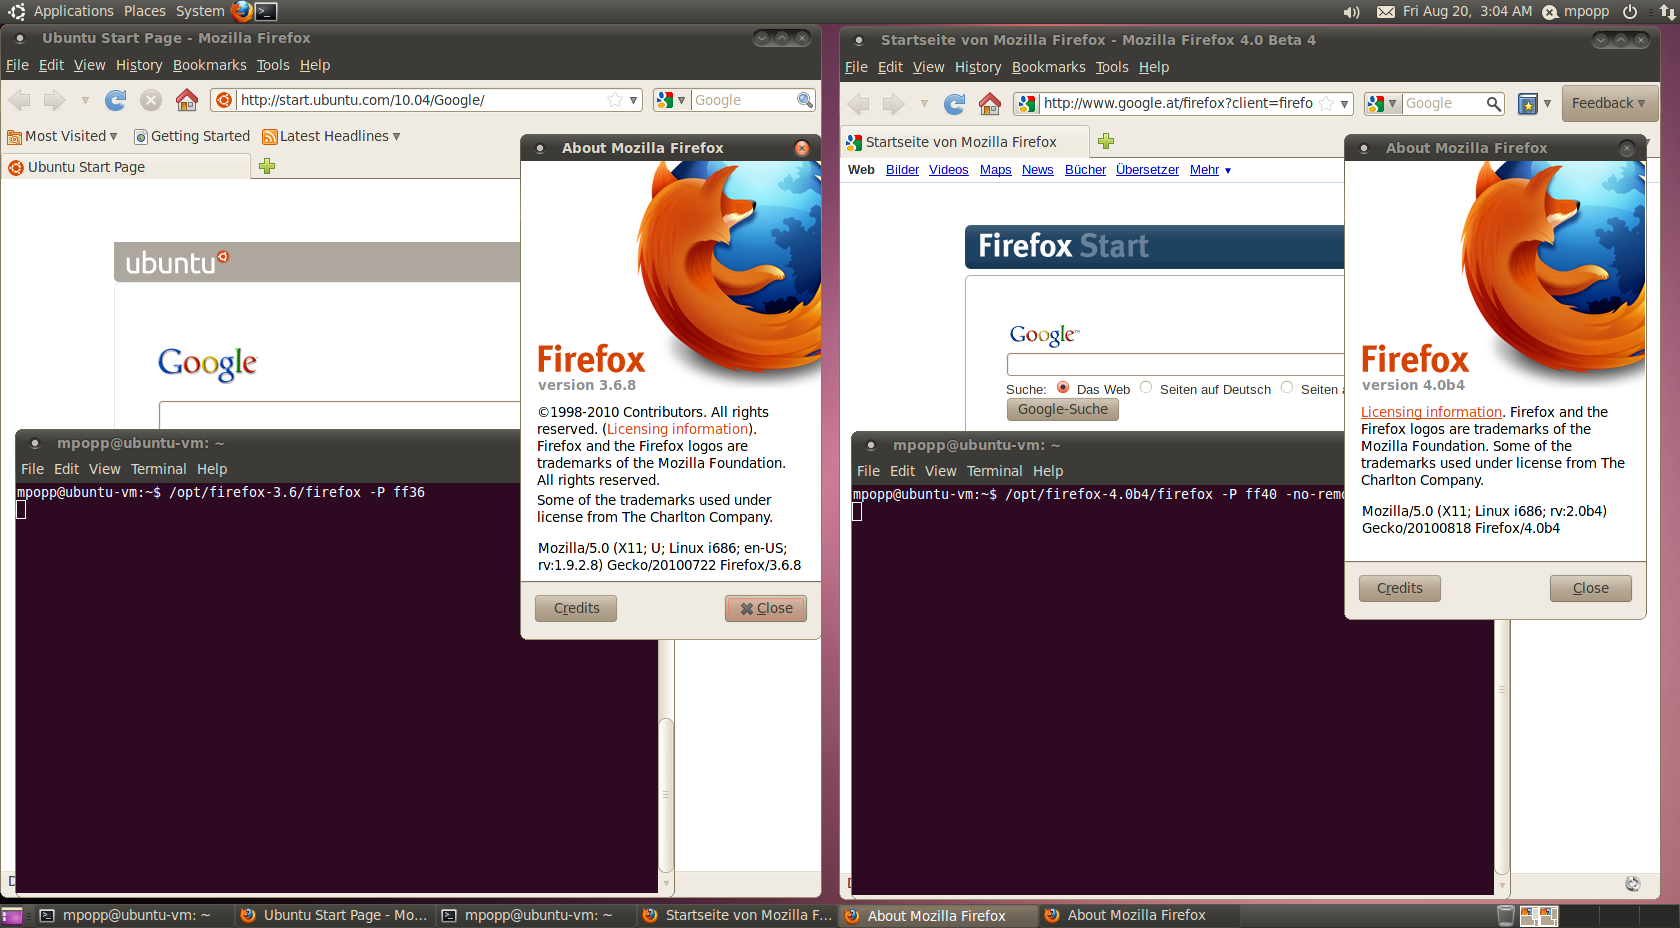 Running multiple Firefox versions & profiles at the same